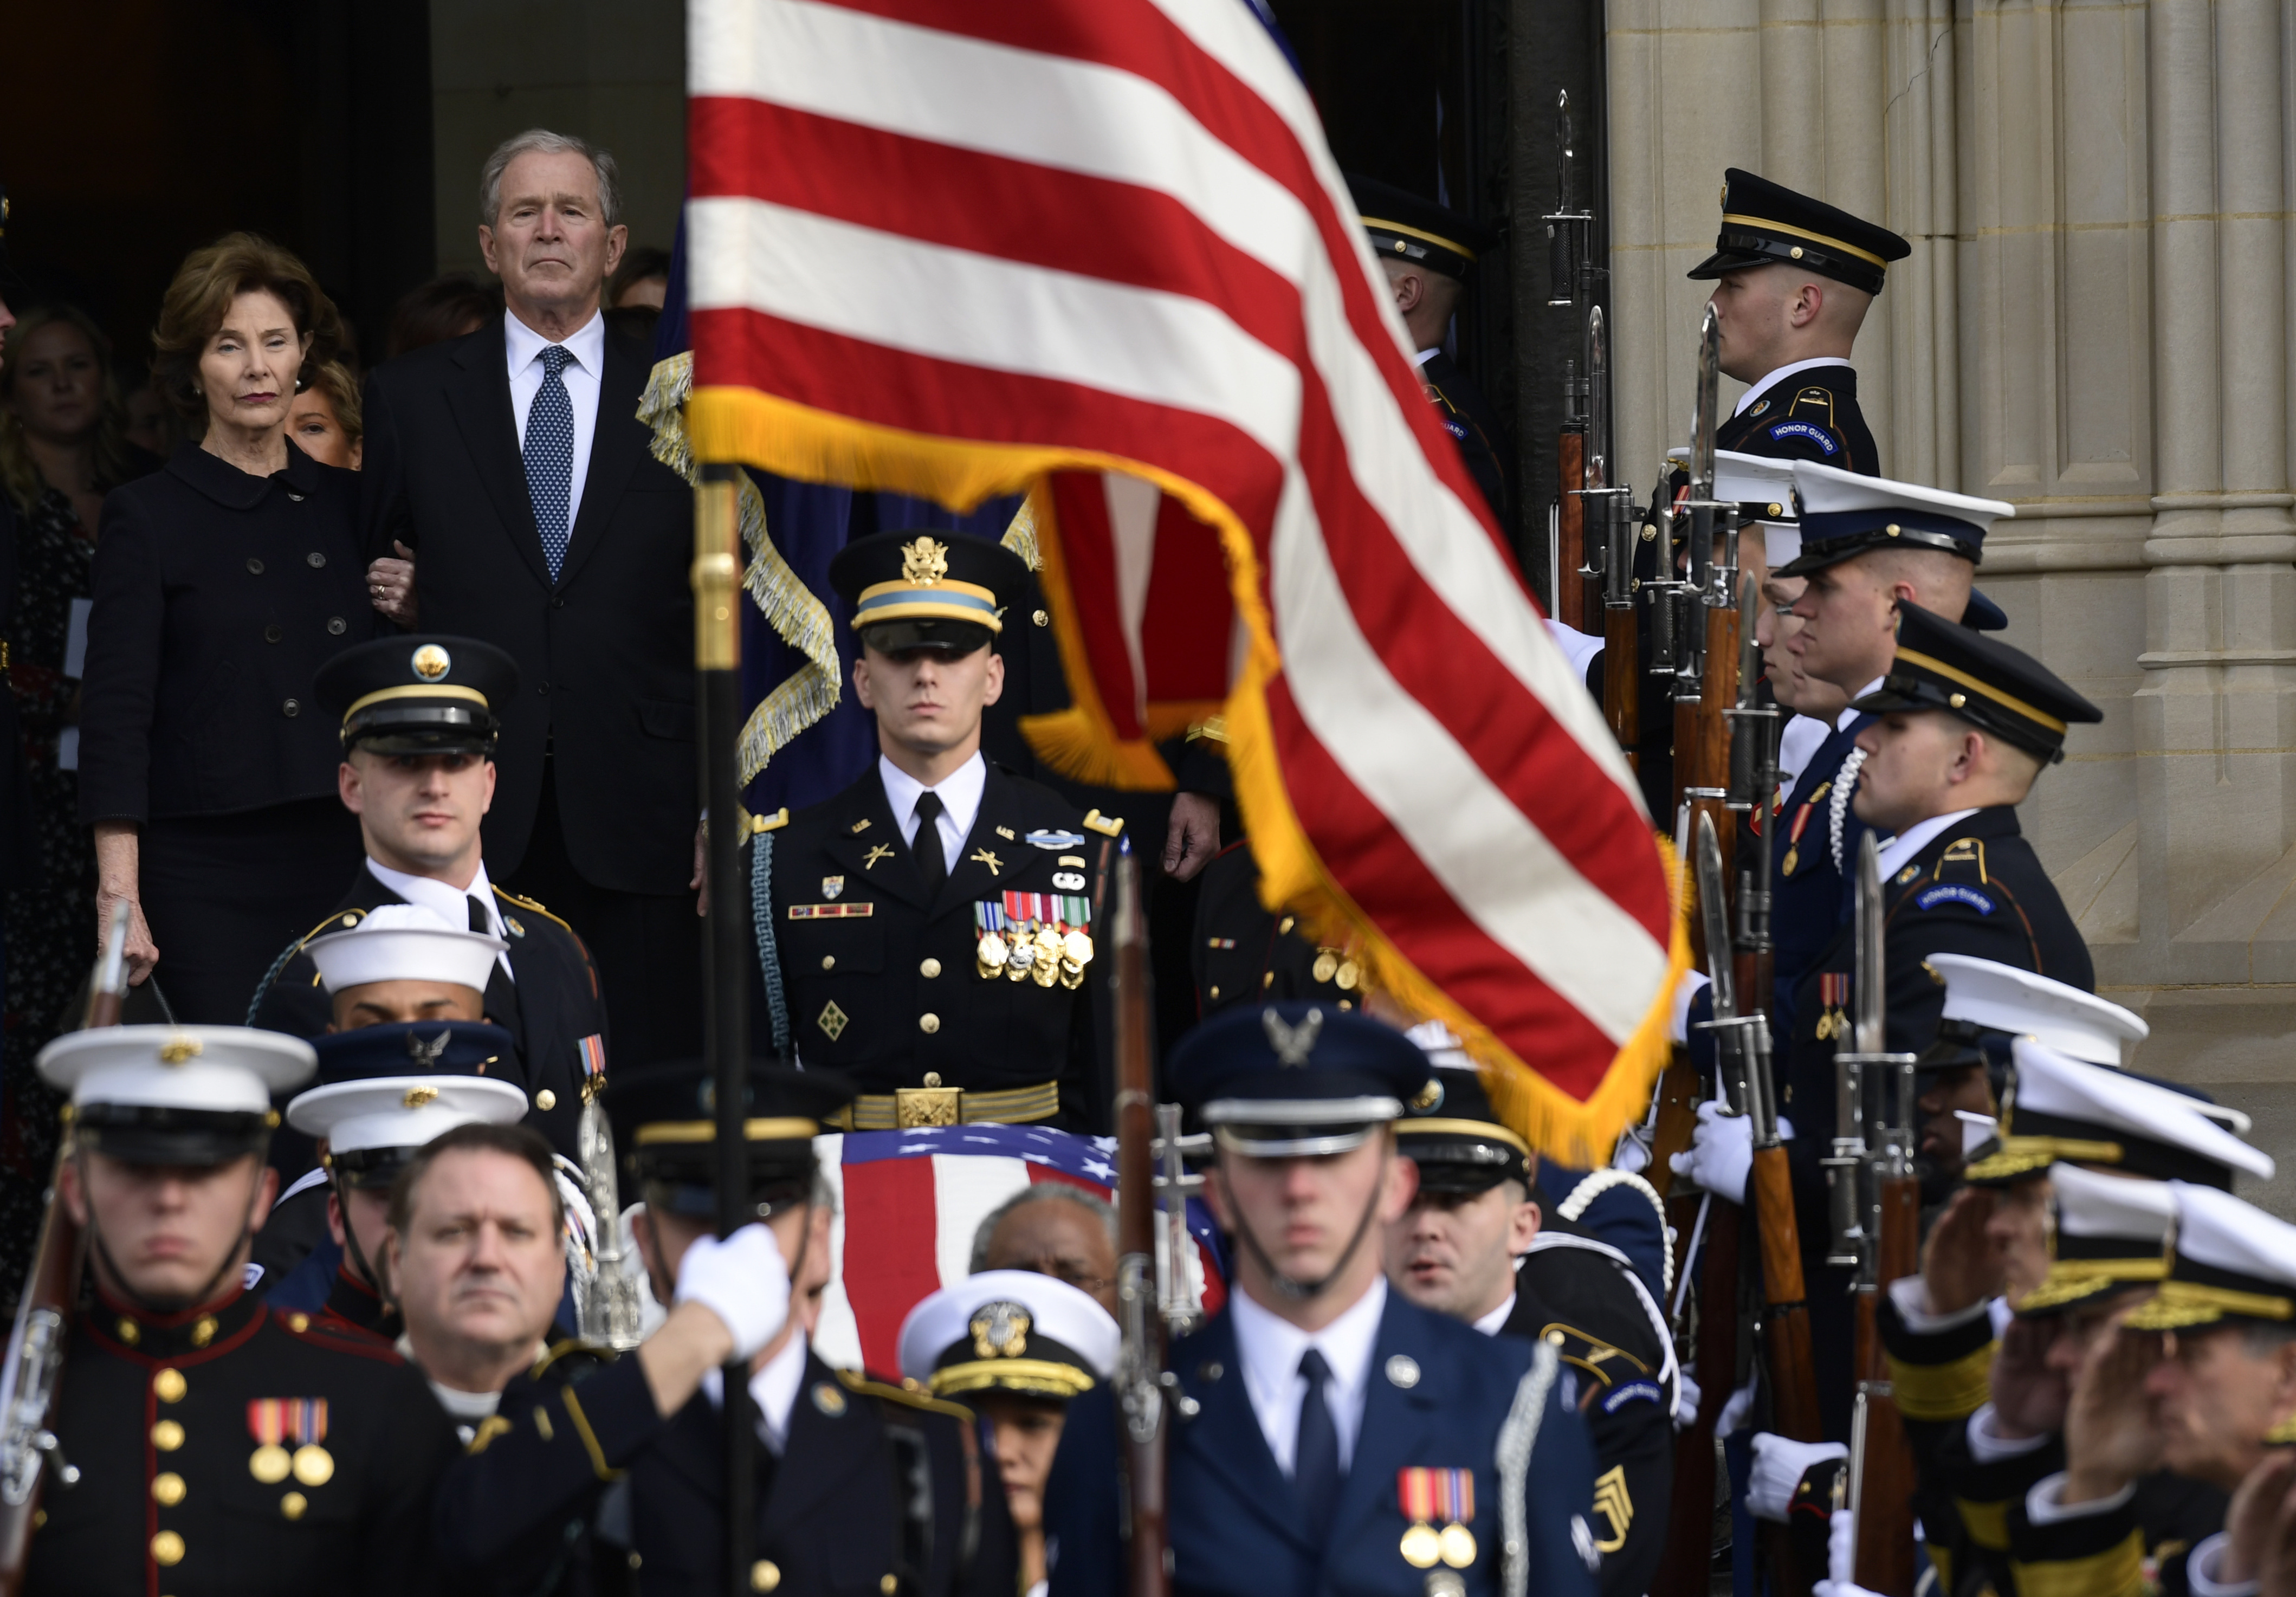 Former President George W. Bush and former first lady Laura Bush, top left, watch as the casket of former President George H.W. Bush is carried out after a State Funeral at the National Cathedral in Washington, Wednesday, Dec. 5, 2018.(AP Photo/Susan Walsh)